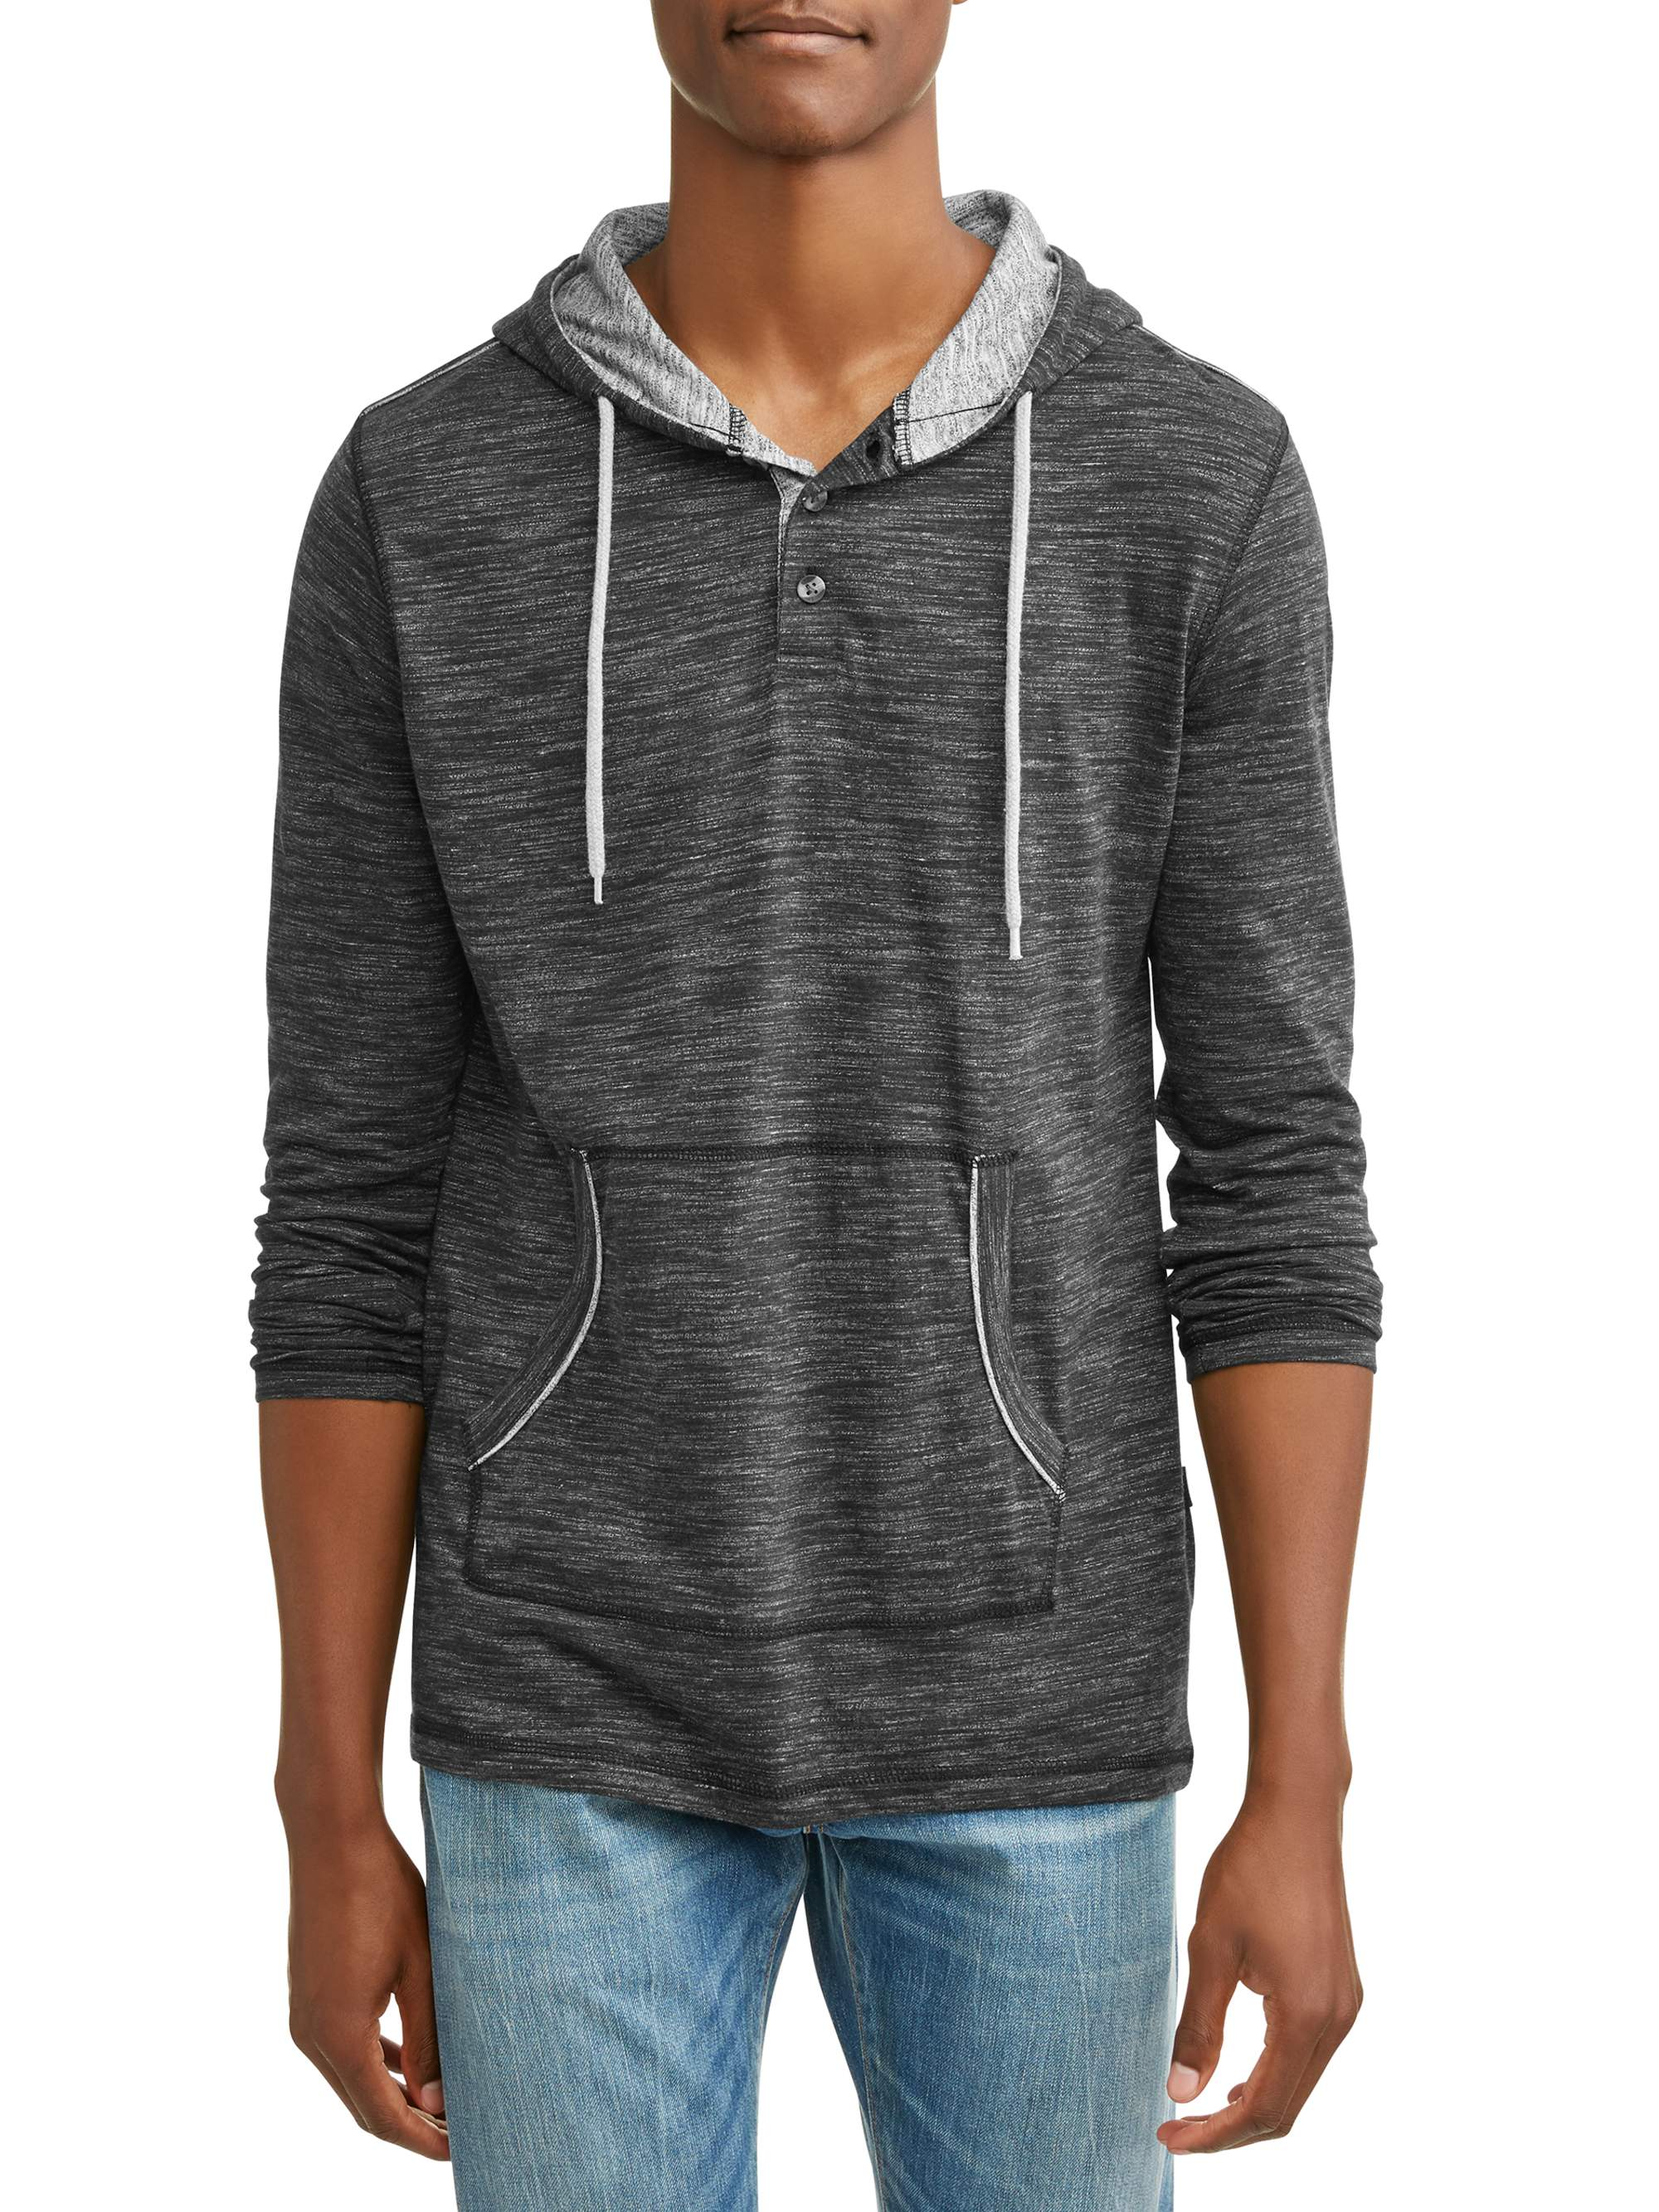 Men's Long Sleeve Raino Hoodie, Available Up To Size Xl